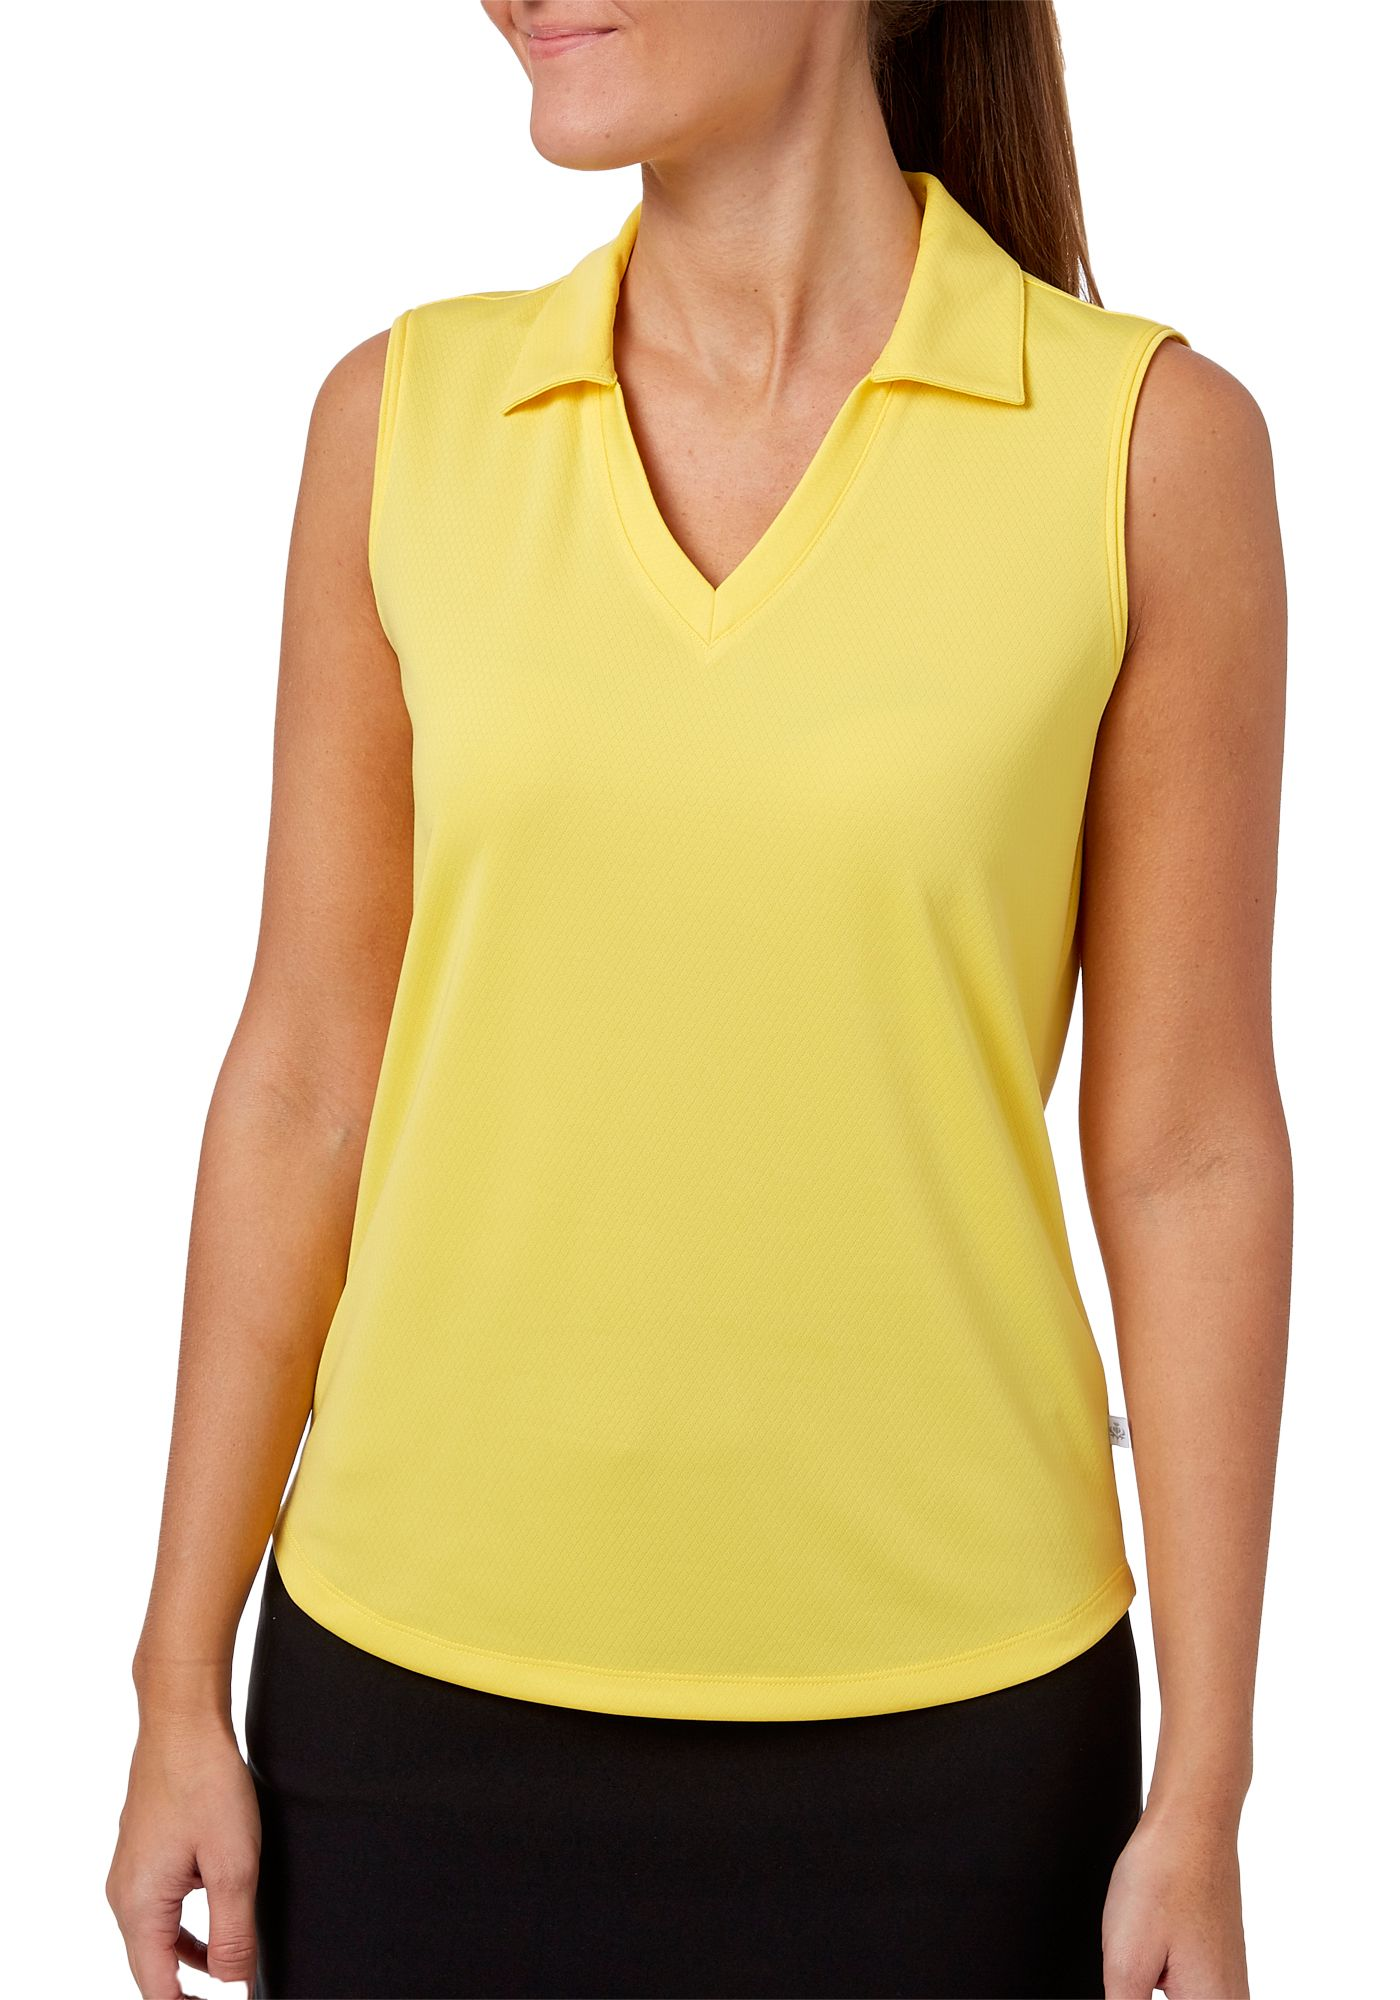 Lady Hagen Women's Essential Sleeveless Polo